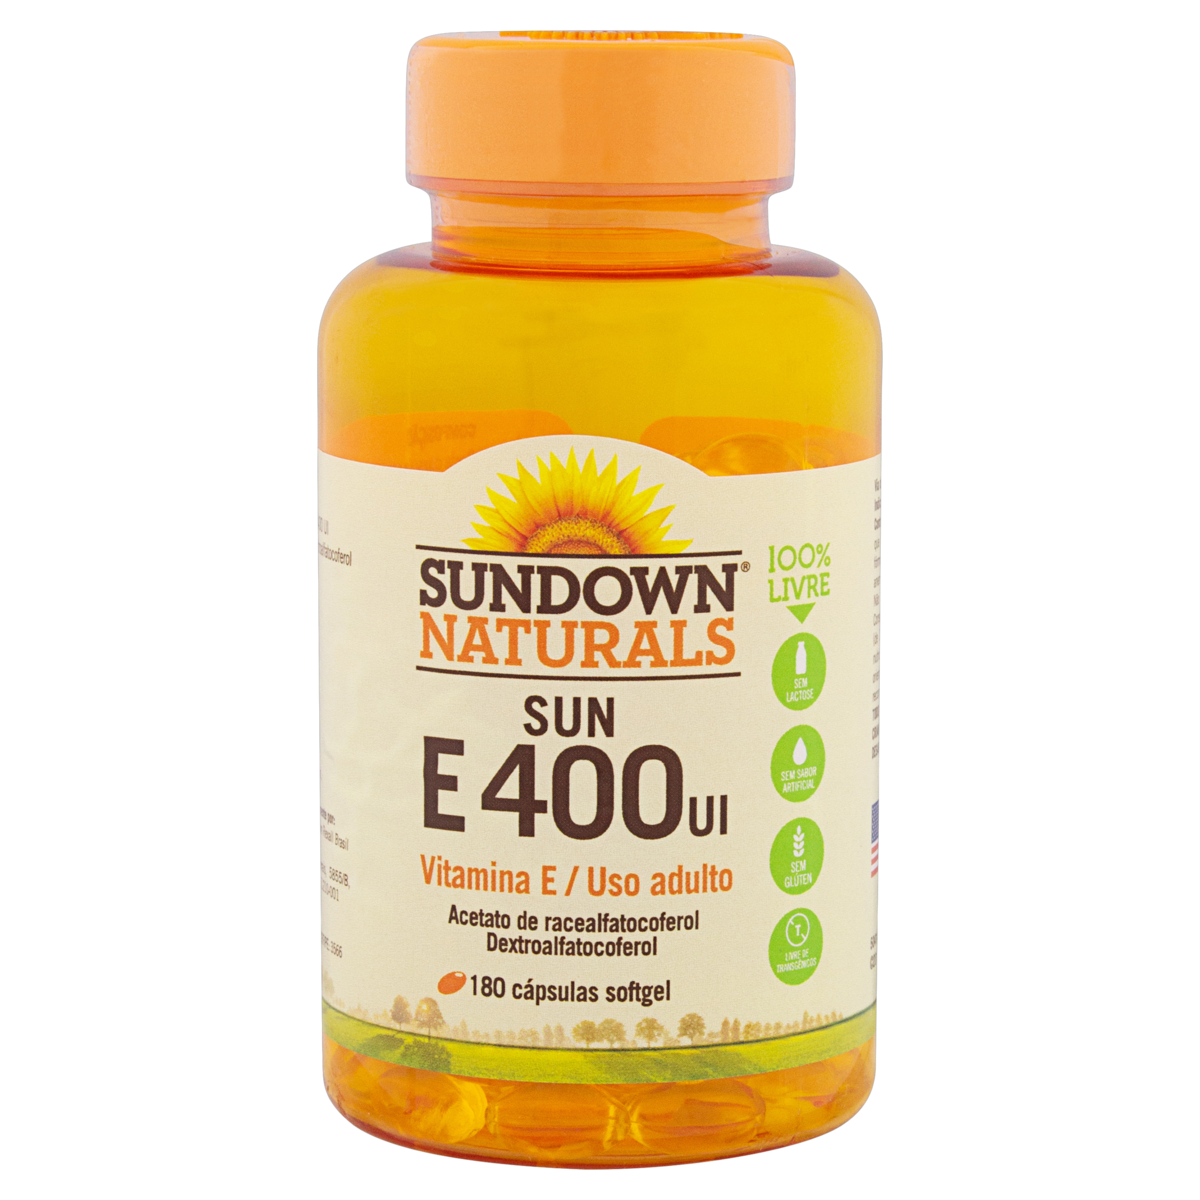 0030768504144 - VITAMINA E SUN E 400UI 180 CÁPSULAS SUNDOWN